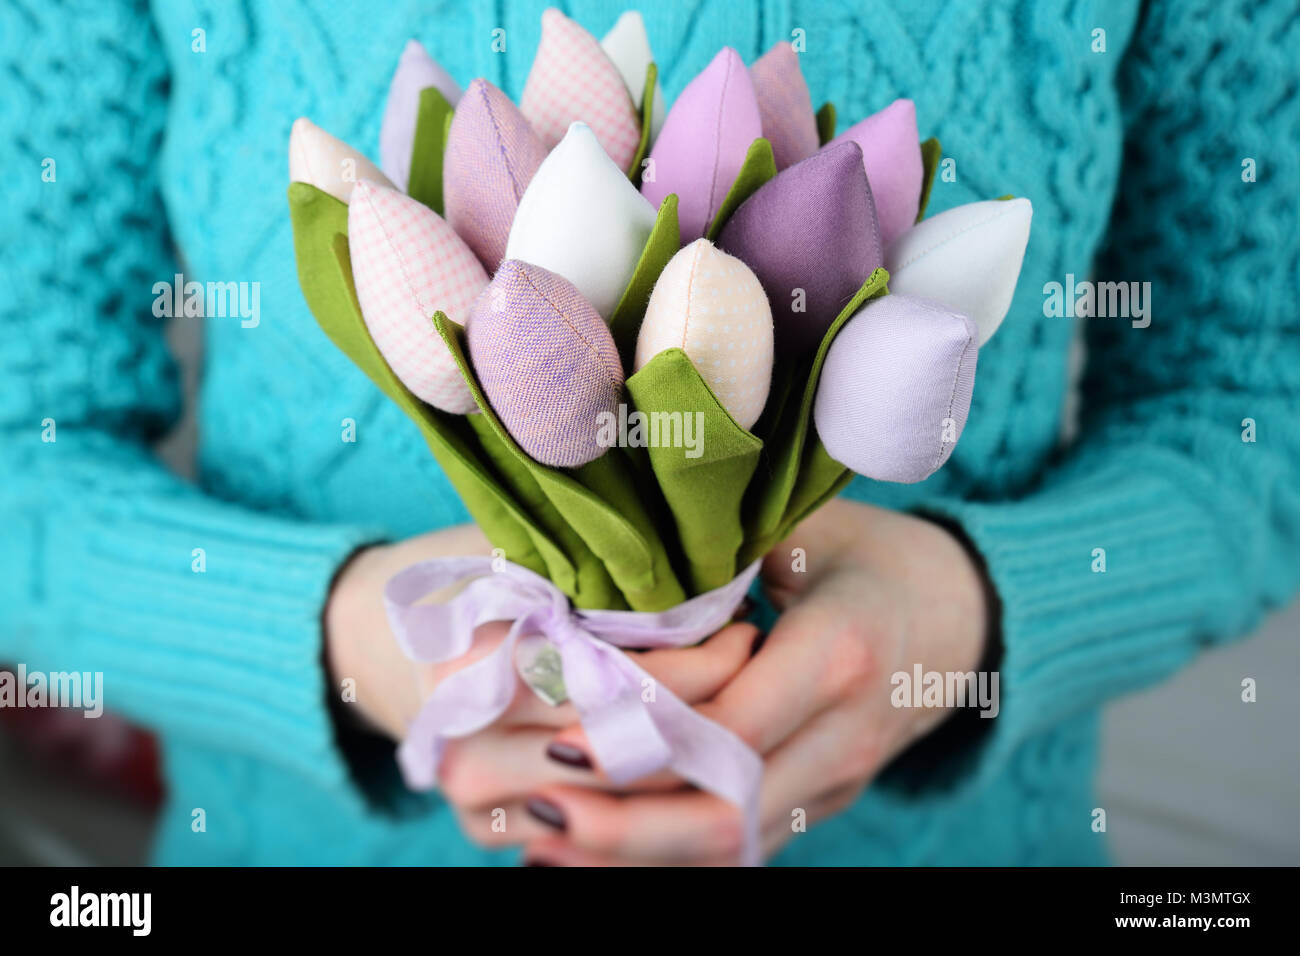 bouquet of beautiful toy tulips close-up in the hands of a girl in a blue knitted sweater. - Stock Image